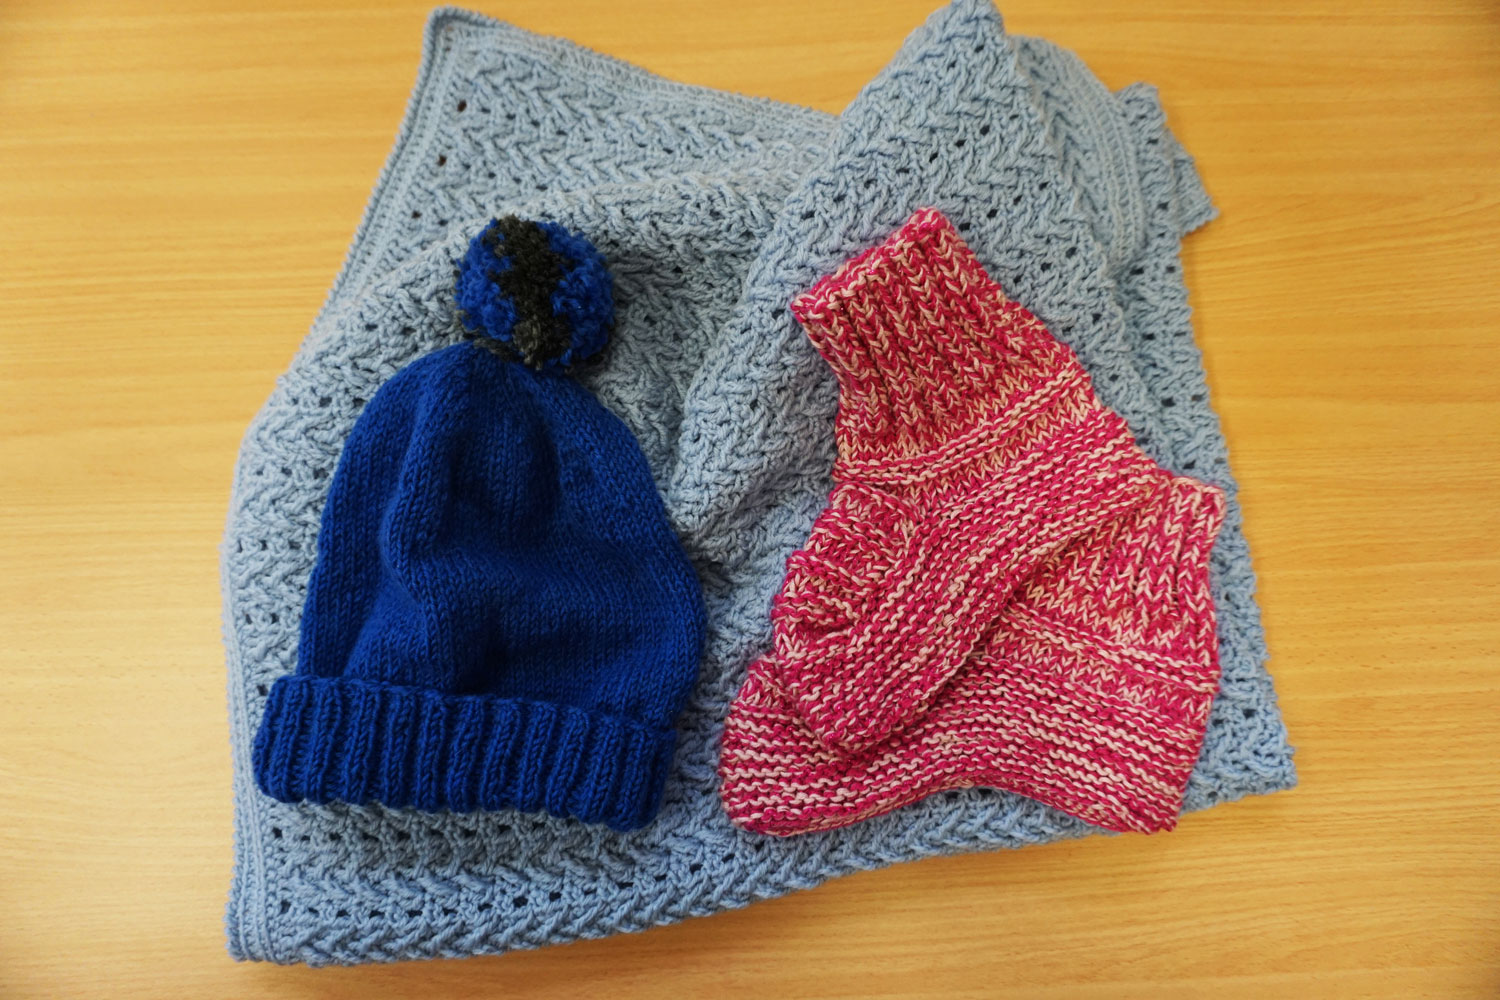 Knitted wool beanie with pom-pom ; pink bedsocks ; crocheted intricate pattern blanket – All 100% pure Australian